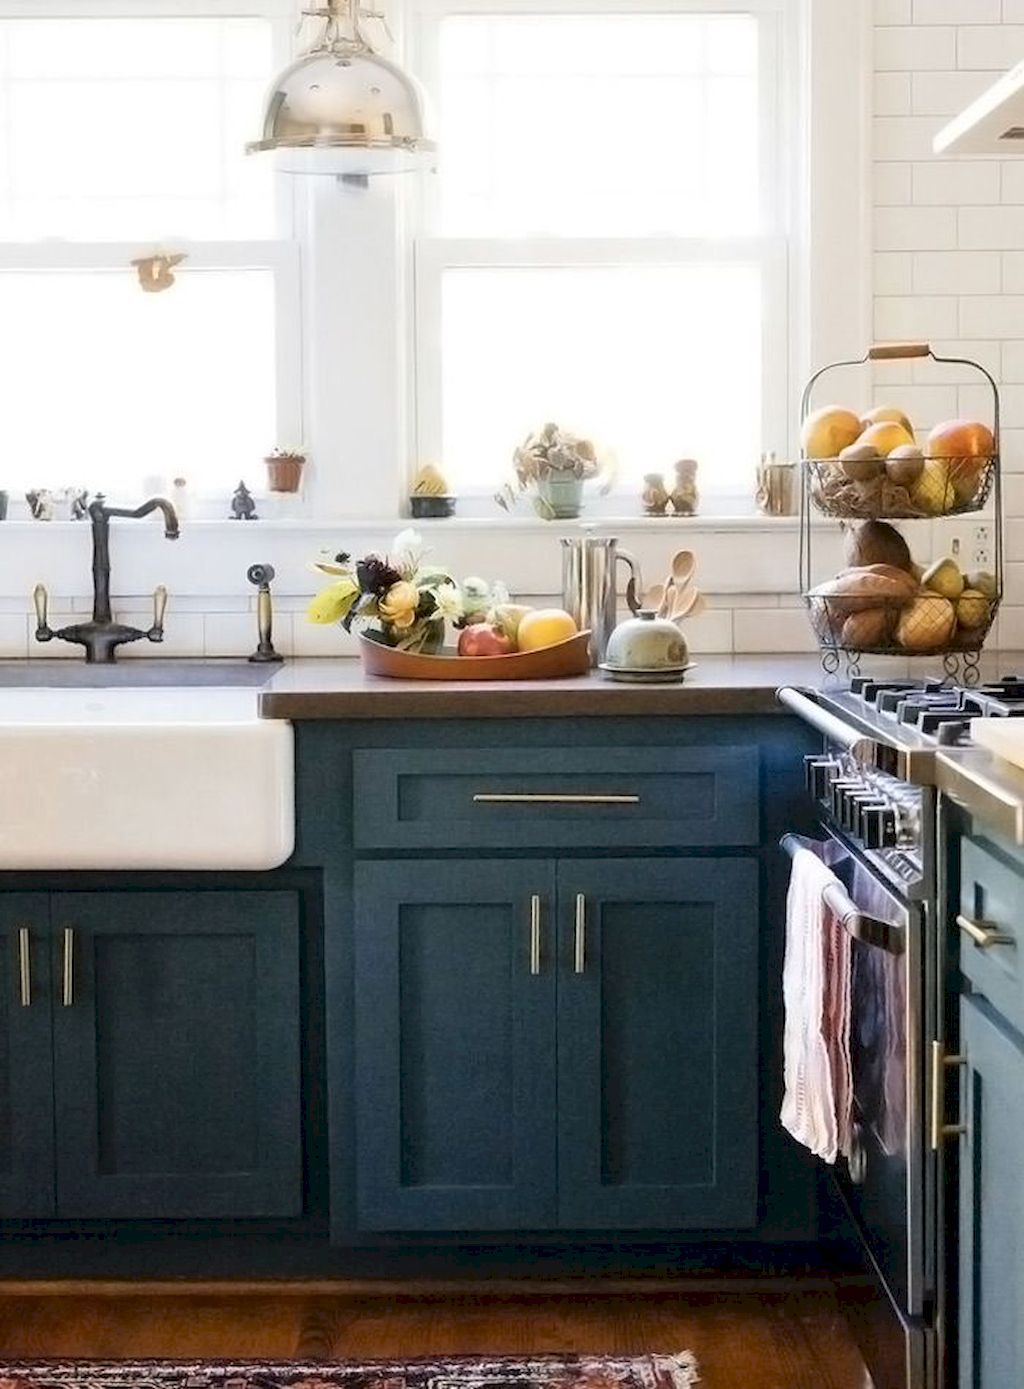 farmhouse kitchen cabinets decorating ideas on a budget 23 farmhouse style kitchen cabinets on farmhouse kitchen on a budget id=93348